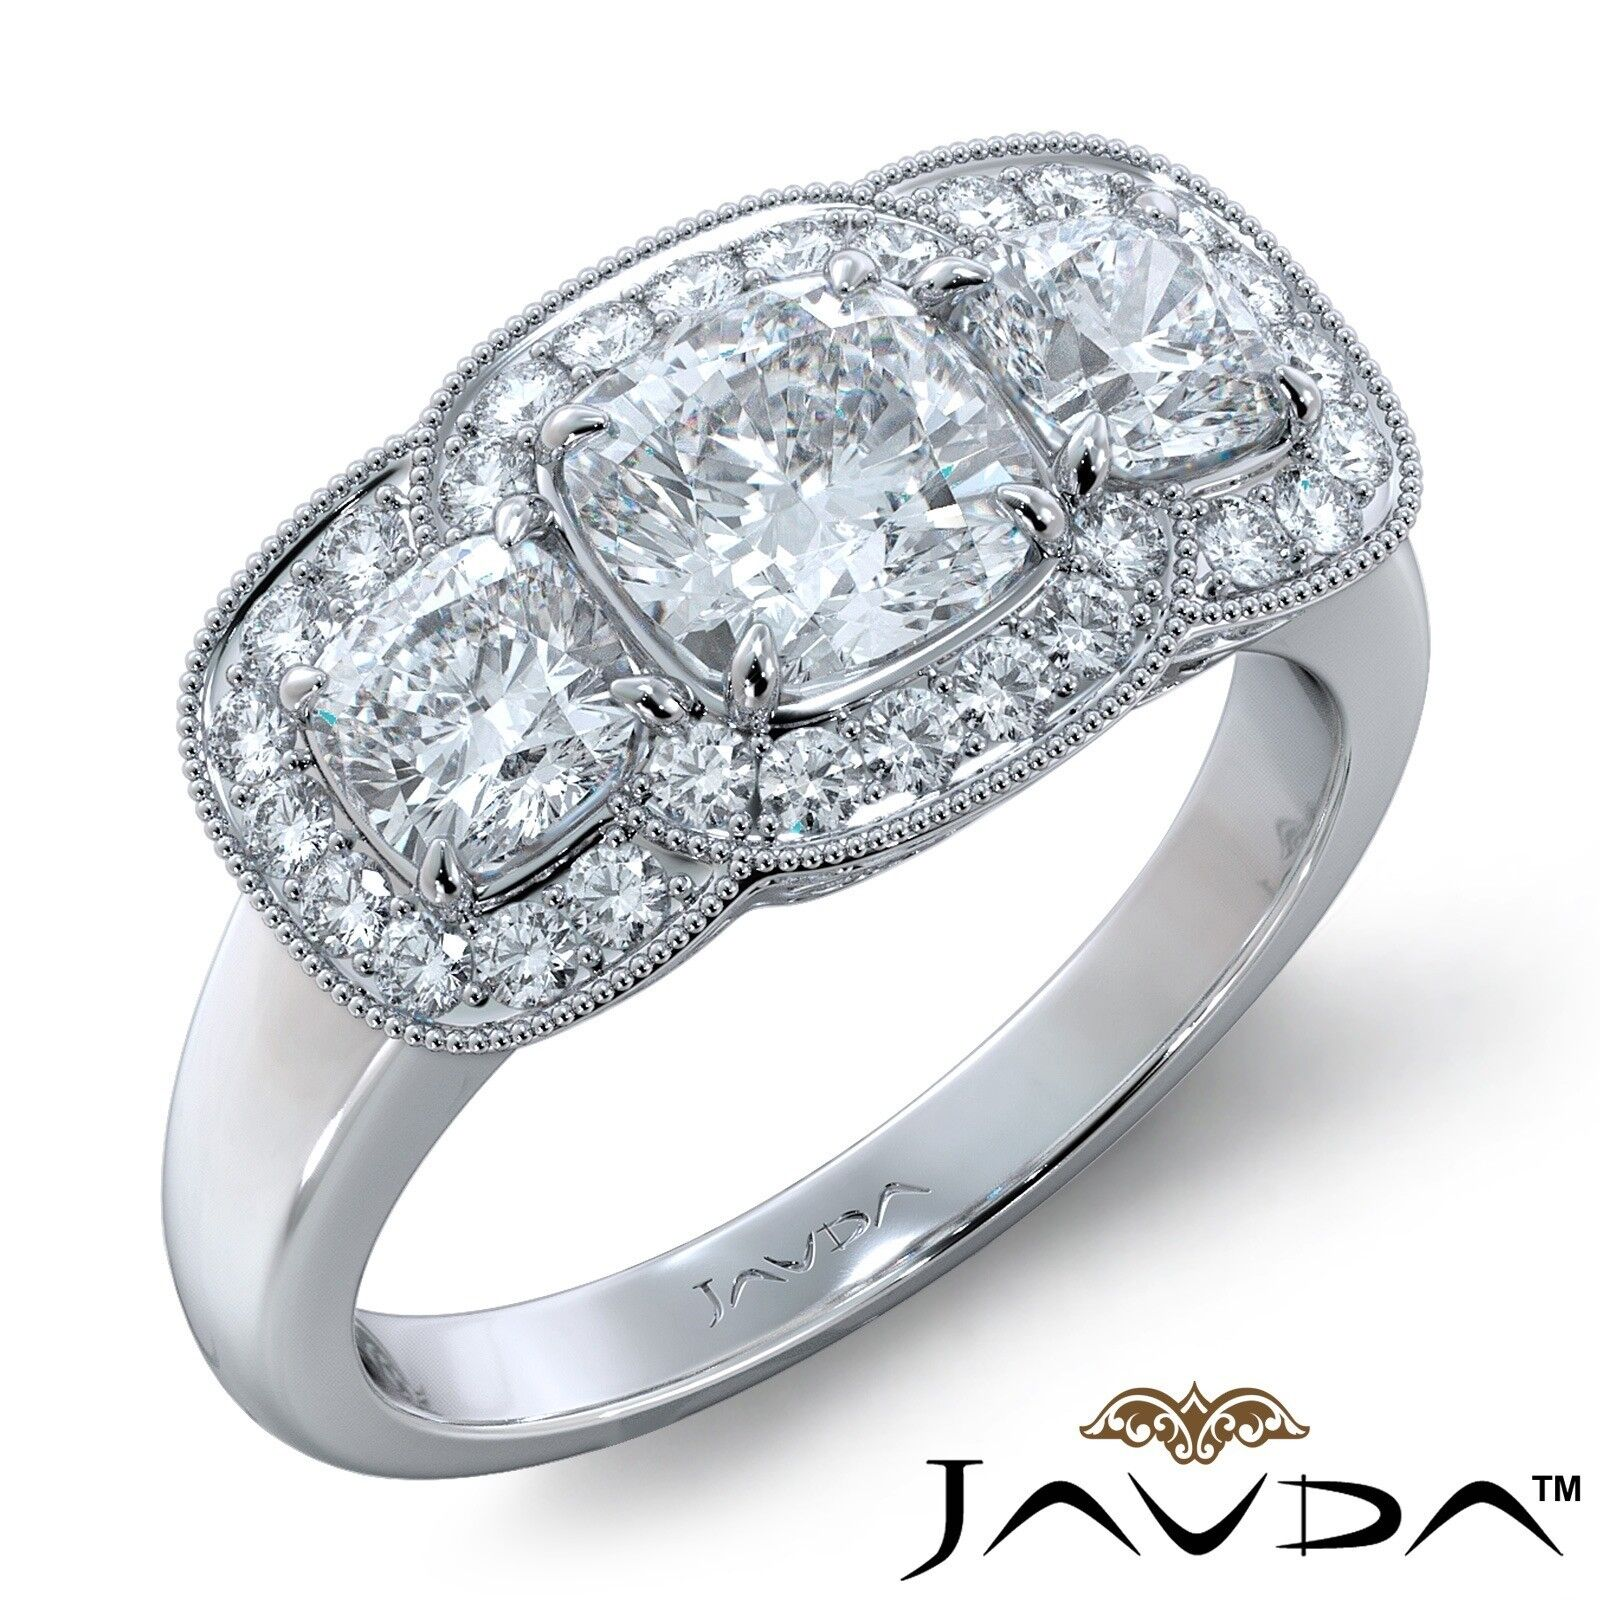 2.25ctw Milgrain Halo 3 Stone Cushion Diamond Engagement Ring GIA I-SI1 W Gold